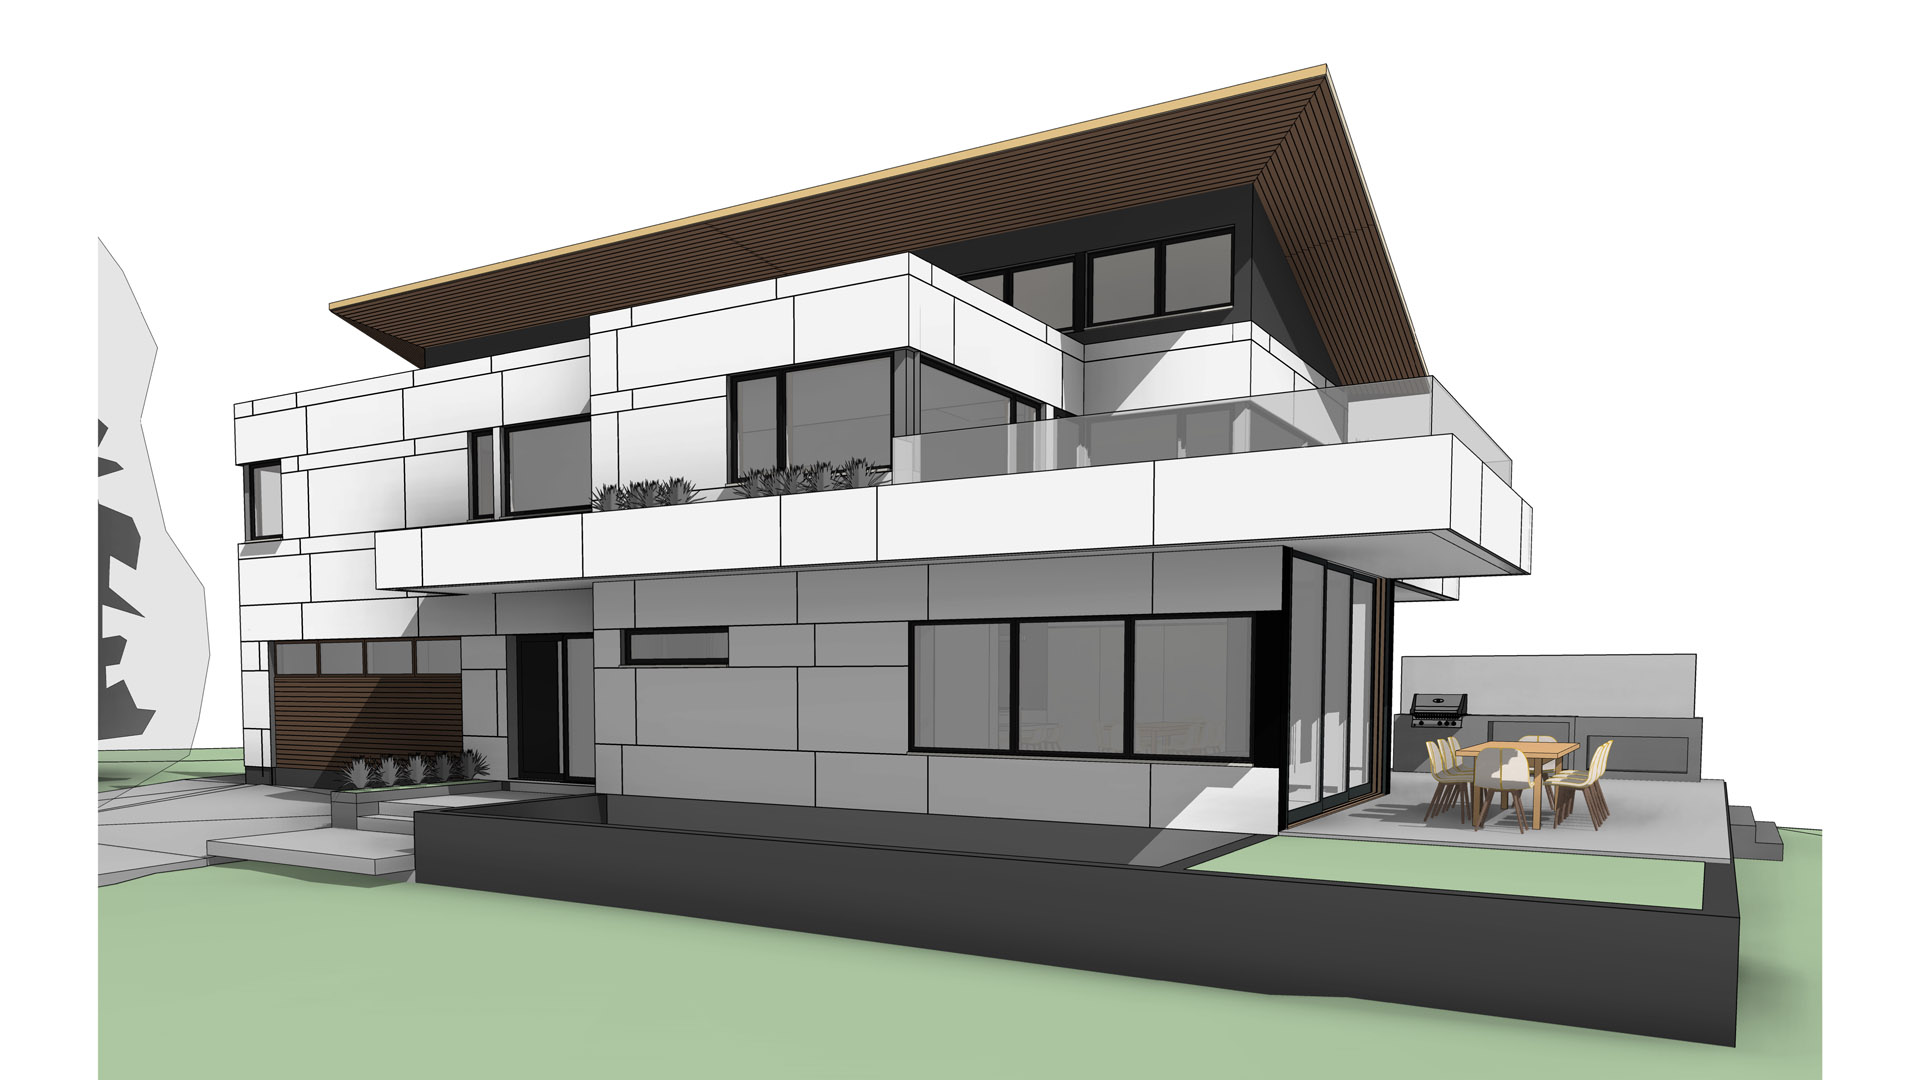 Southern Ontario Architects